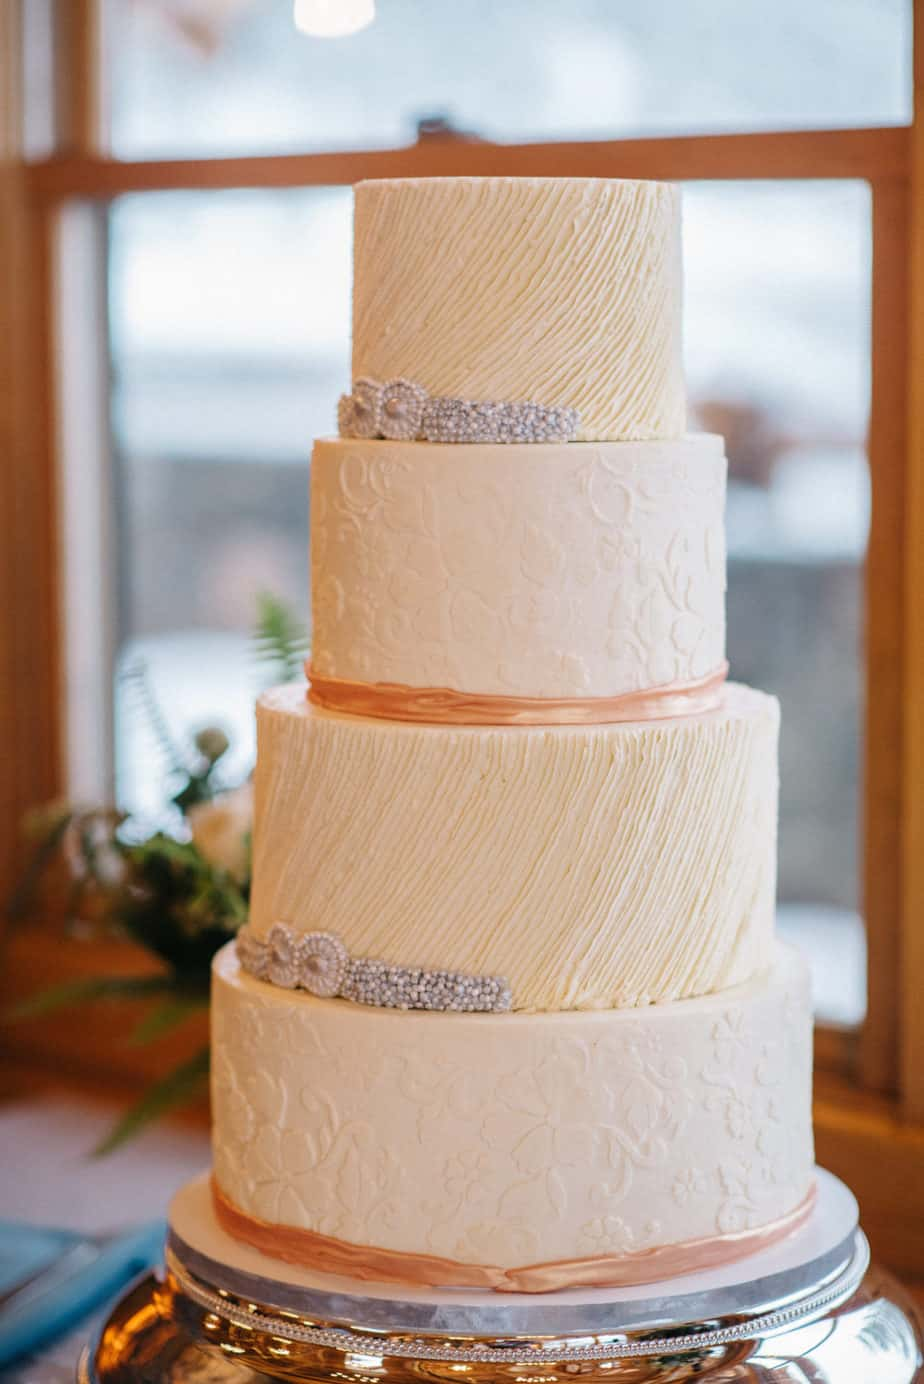 a cake come true wedding dress cake